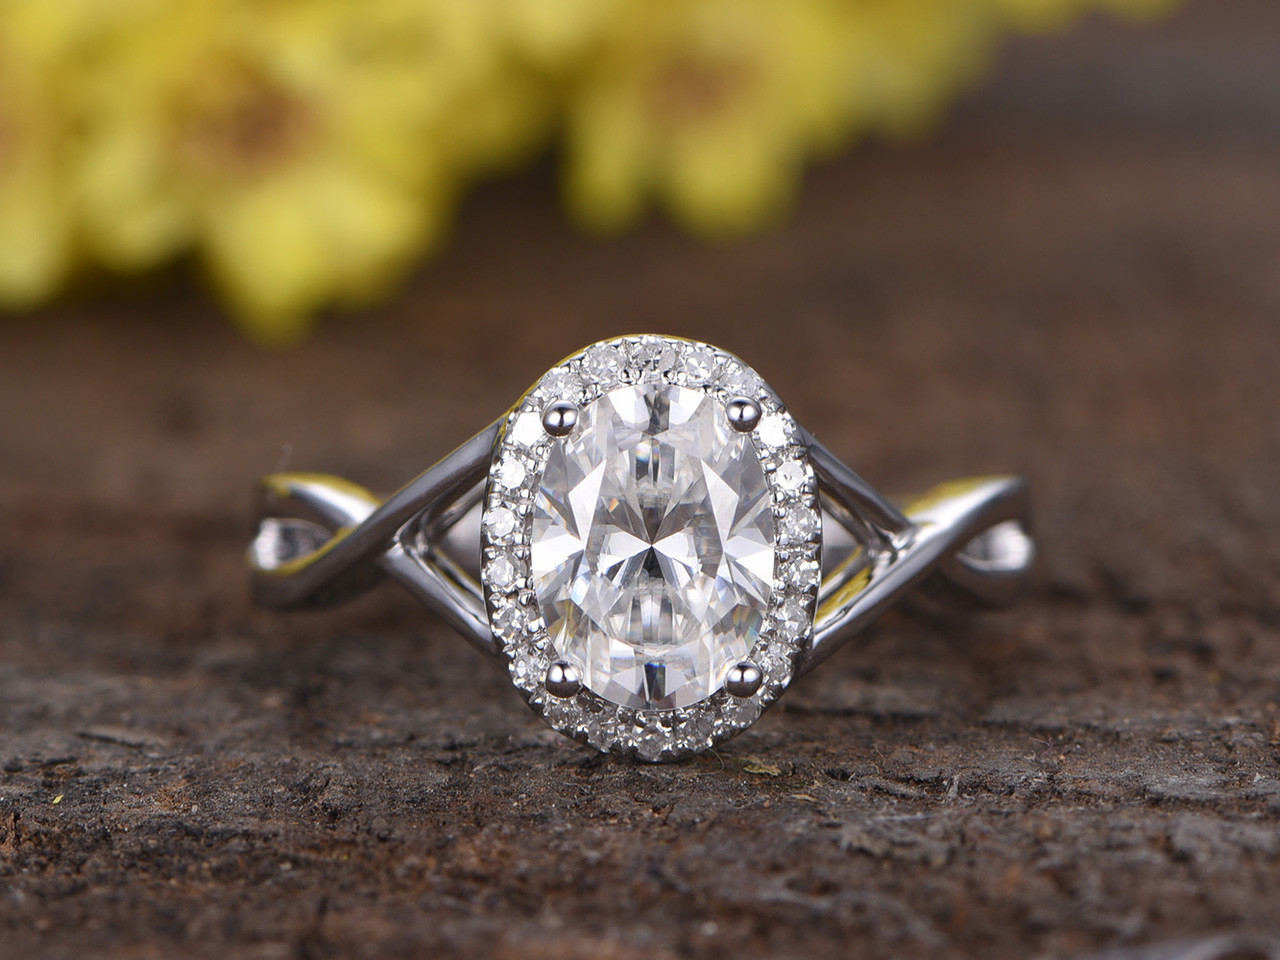 shane co ring p built white gold in rings round item engagement diamond infinity